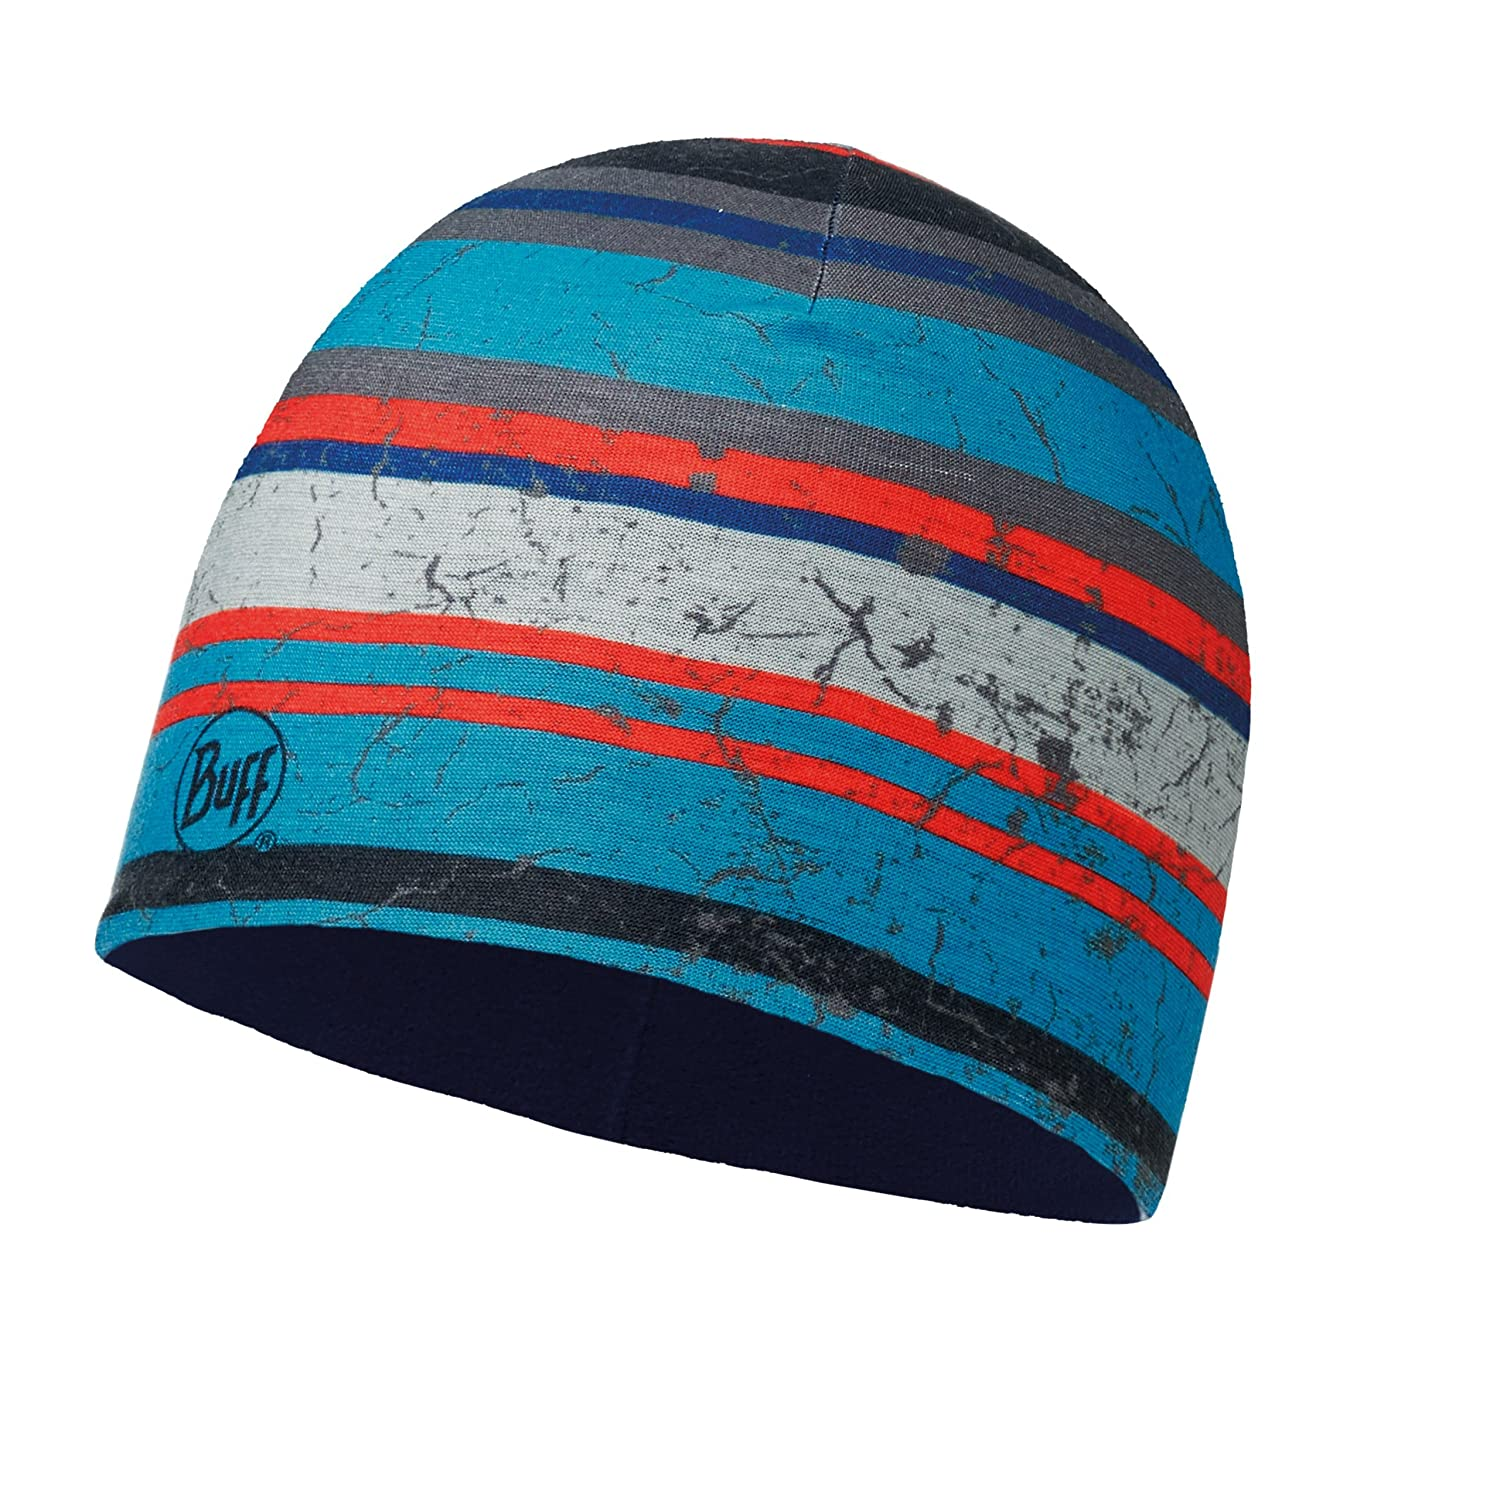 Original Buff - Microfiber & Polar Gorro, Color Azul S.A 113443.555.10.00